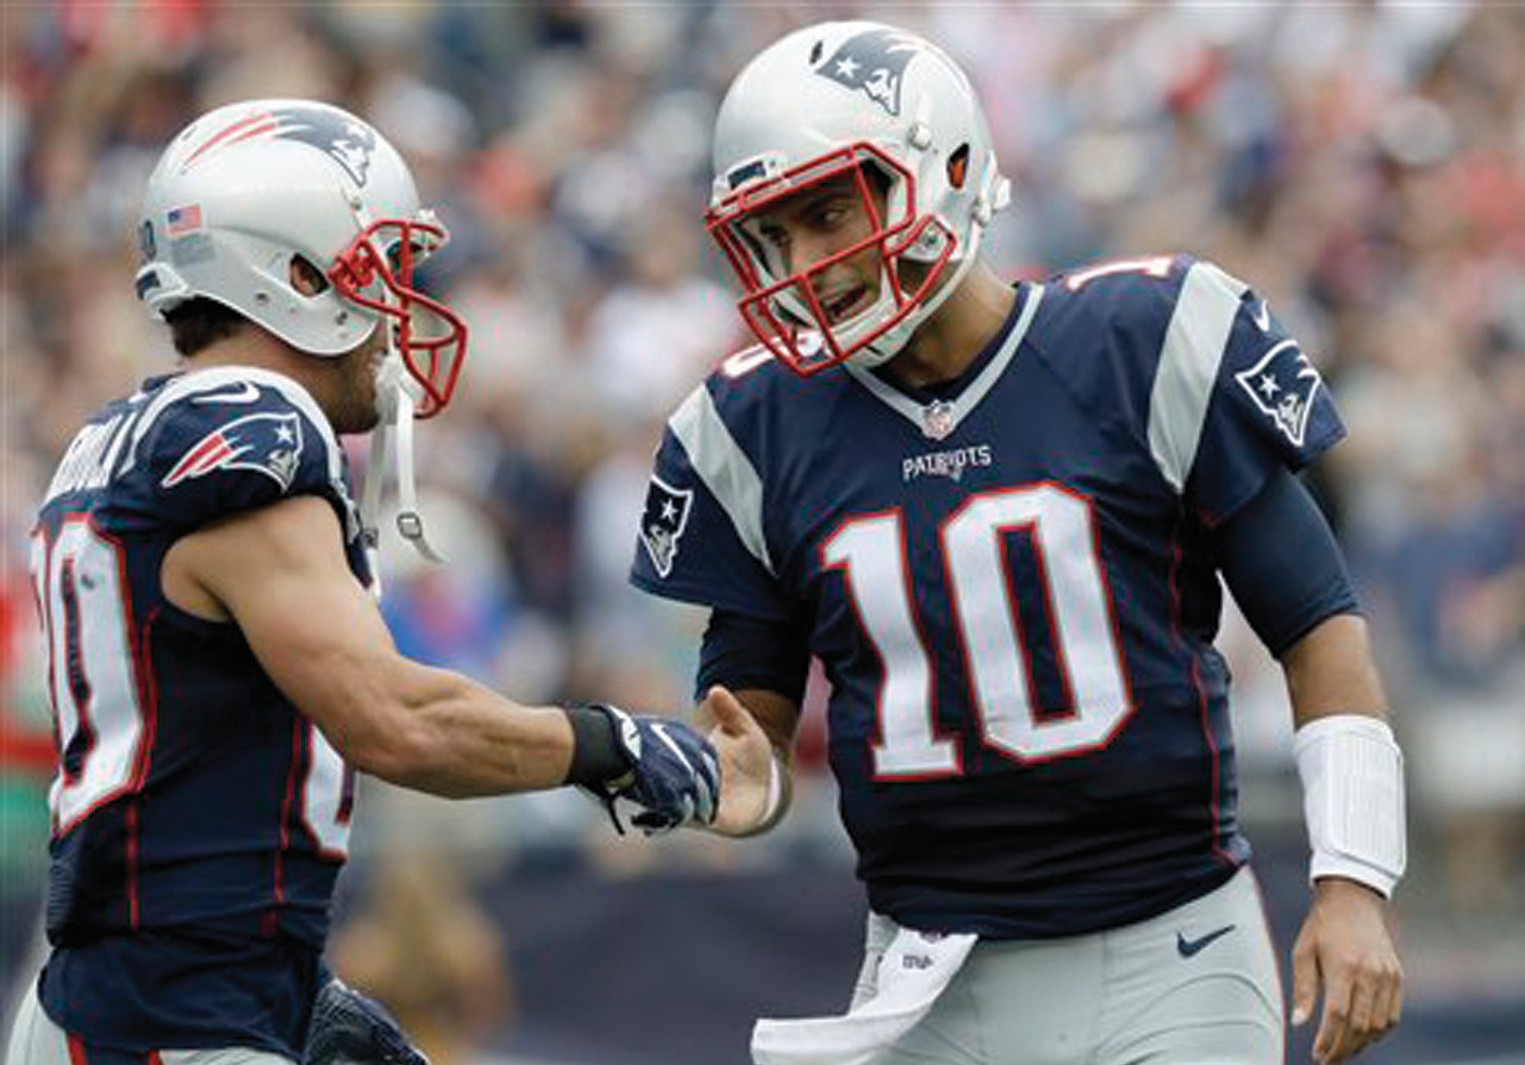 New England Patriots quarterback Jimmy Garoppolo (10) and wide receiver Danny Amendola (80) celebrate their touchdown pass completion against the Miami Dolphins during the first half of an NFL football game Sunday, in Foxborough, Mass.